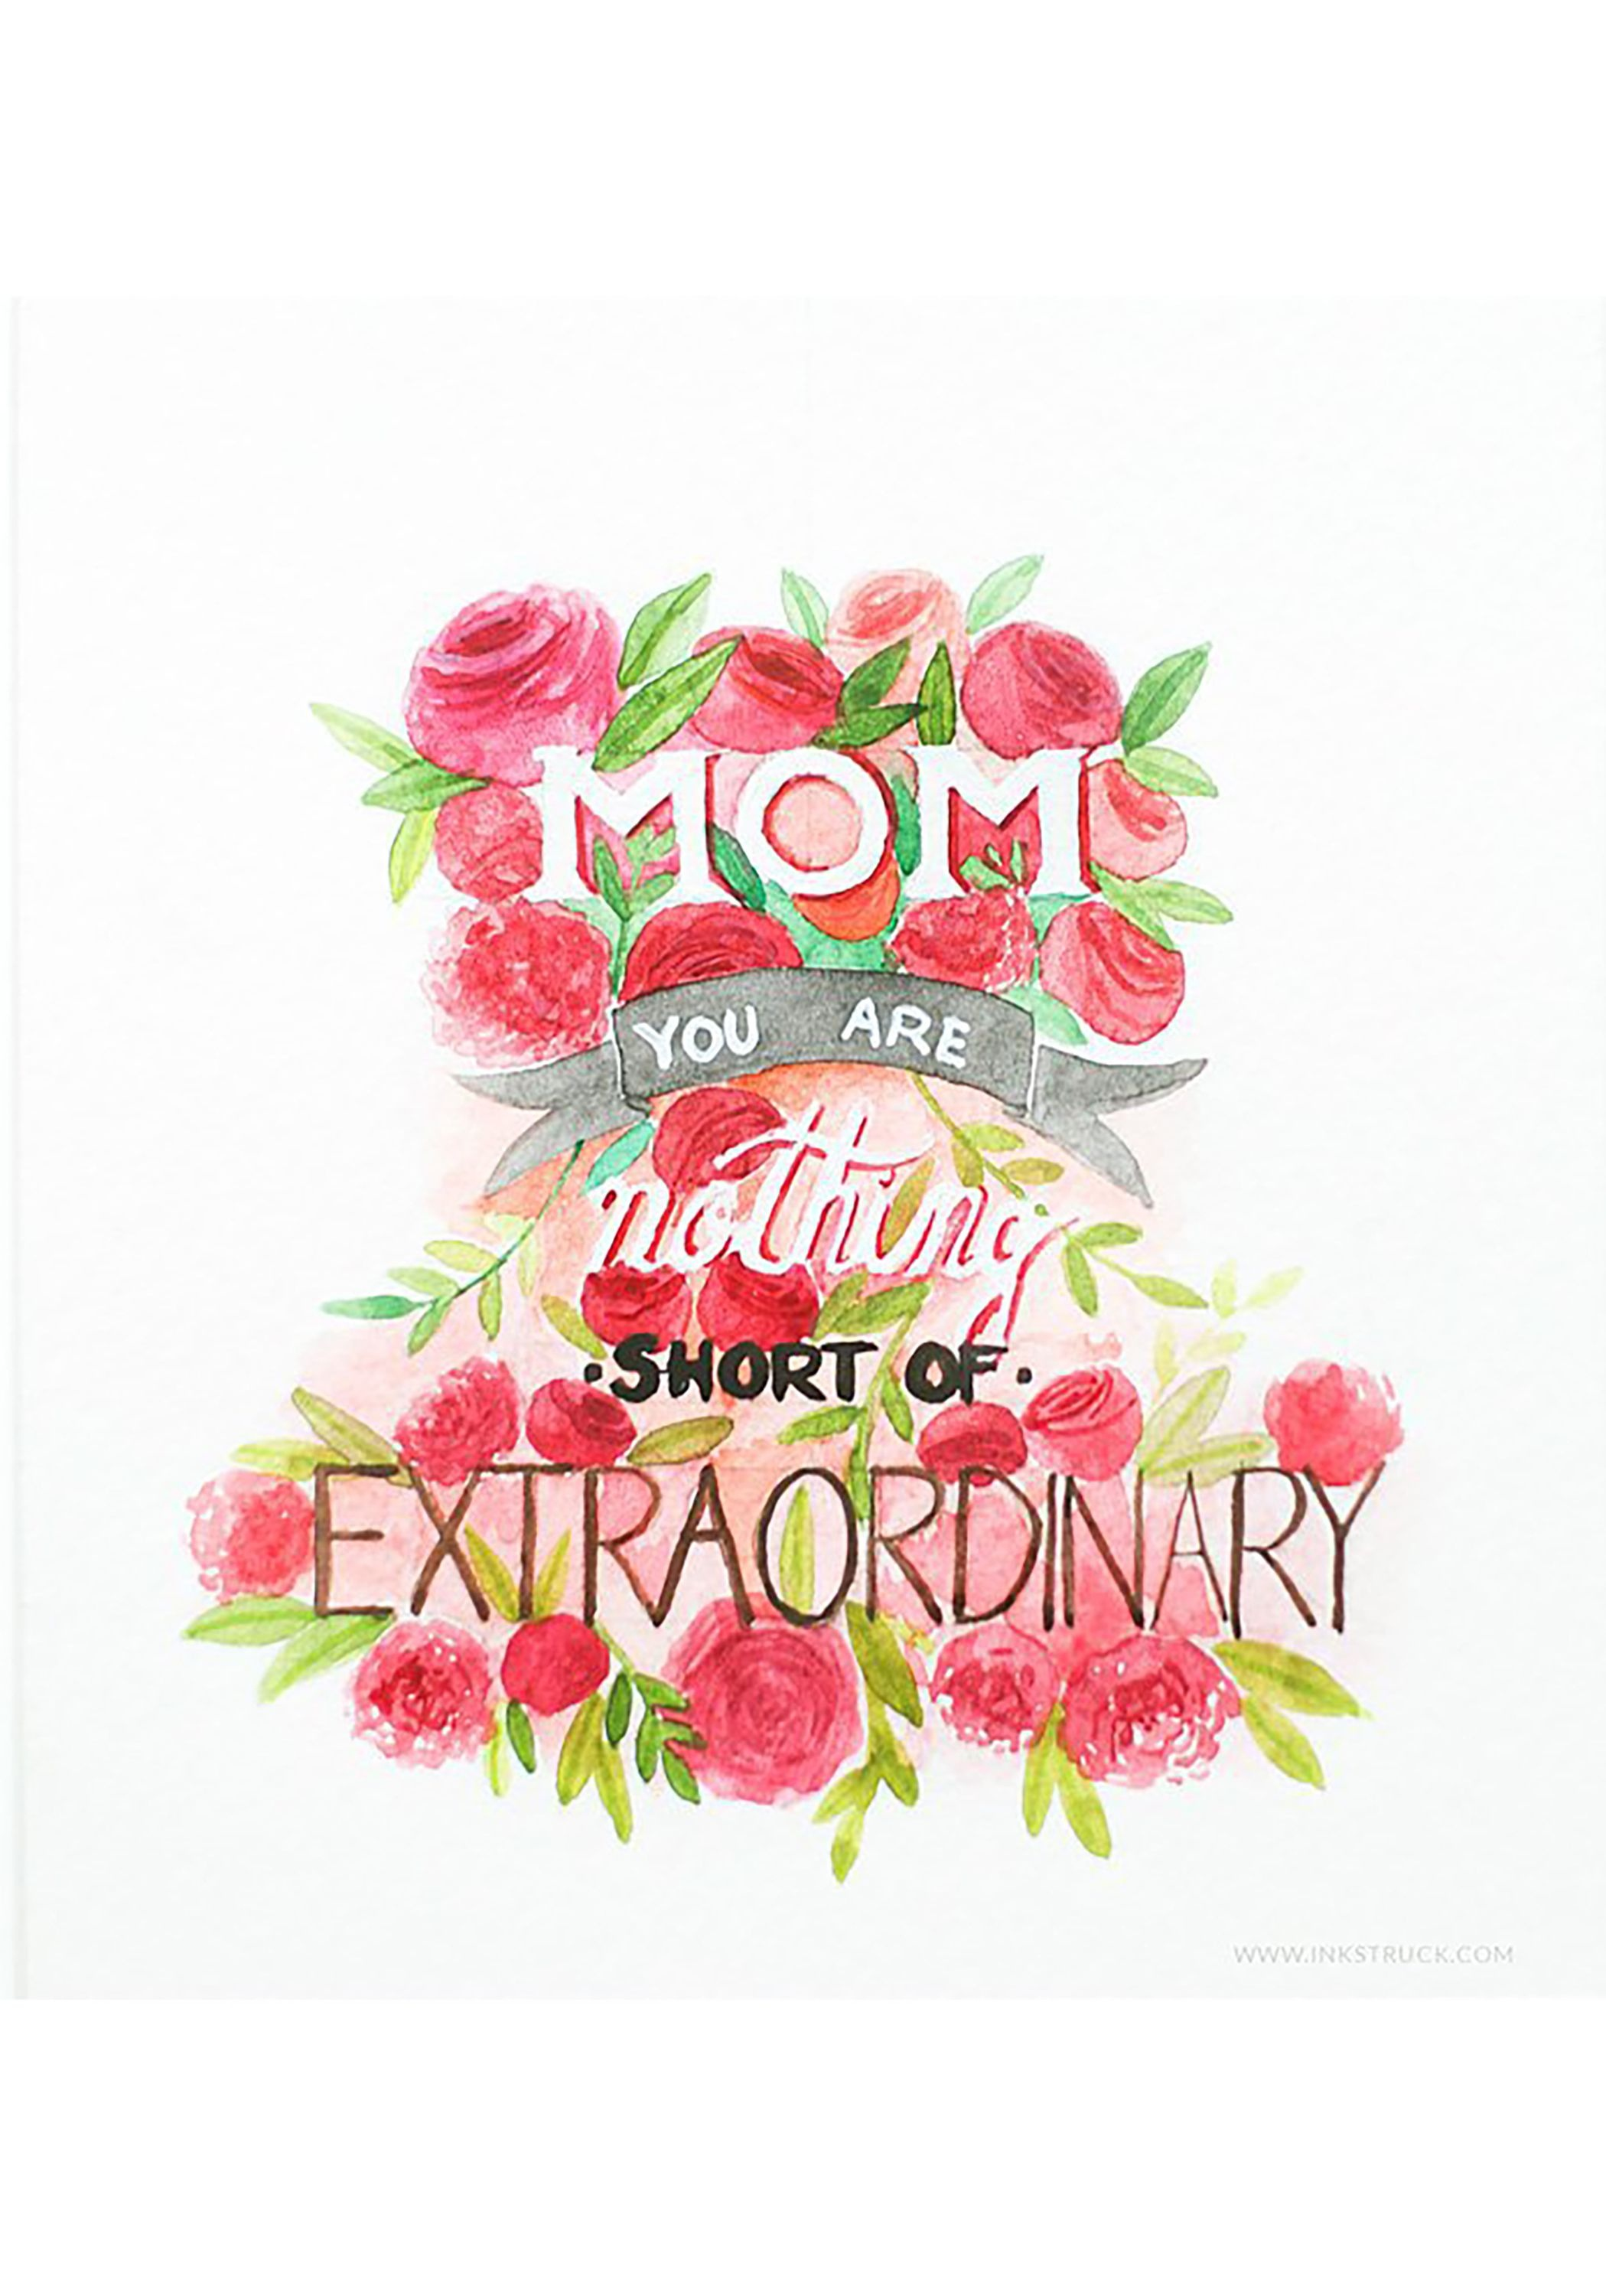 23 Mothers Day Cards - Free Printable Mother's Day Cards - Make Mother Day Card Online Free Printable